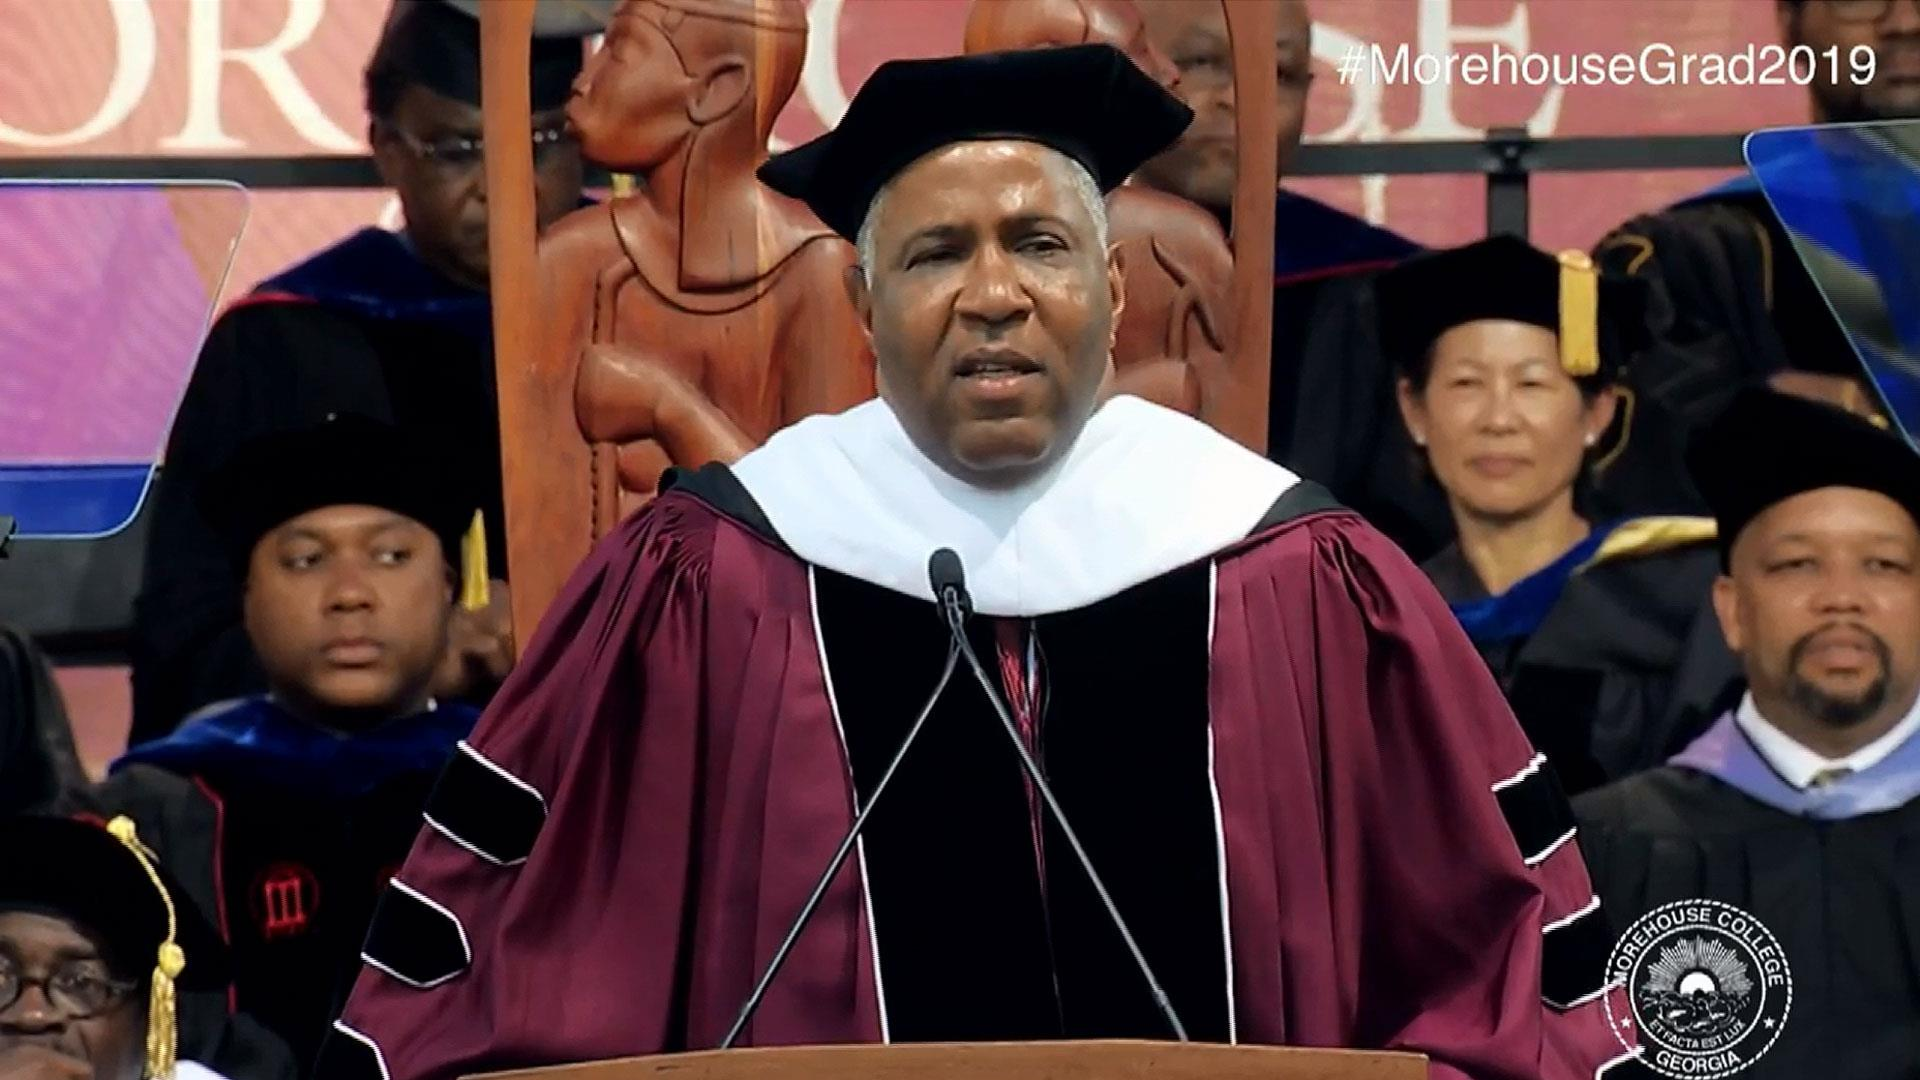 Philanthropist Robert Smith pledges millions to clear Morehouse grads' student debt